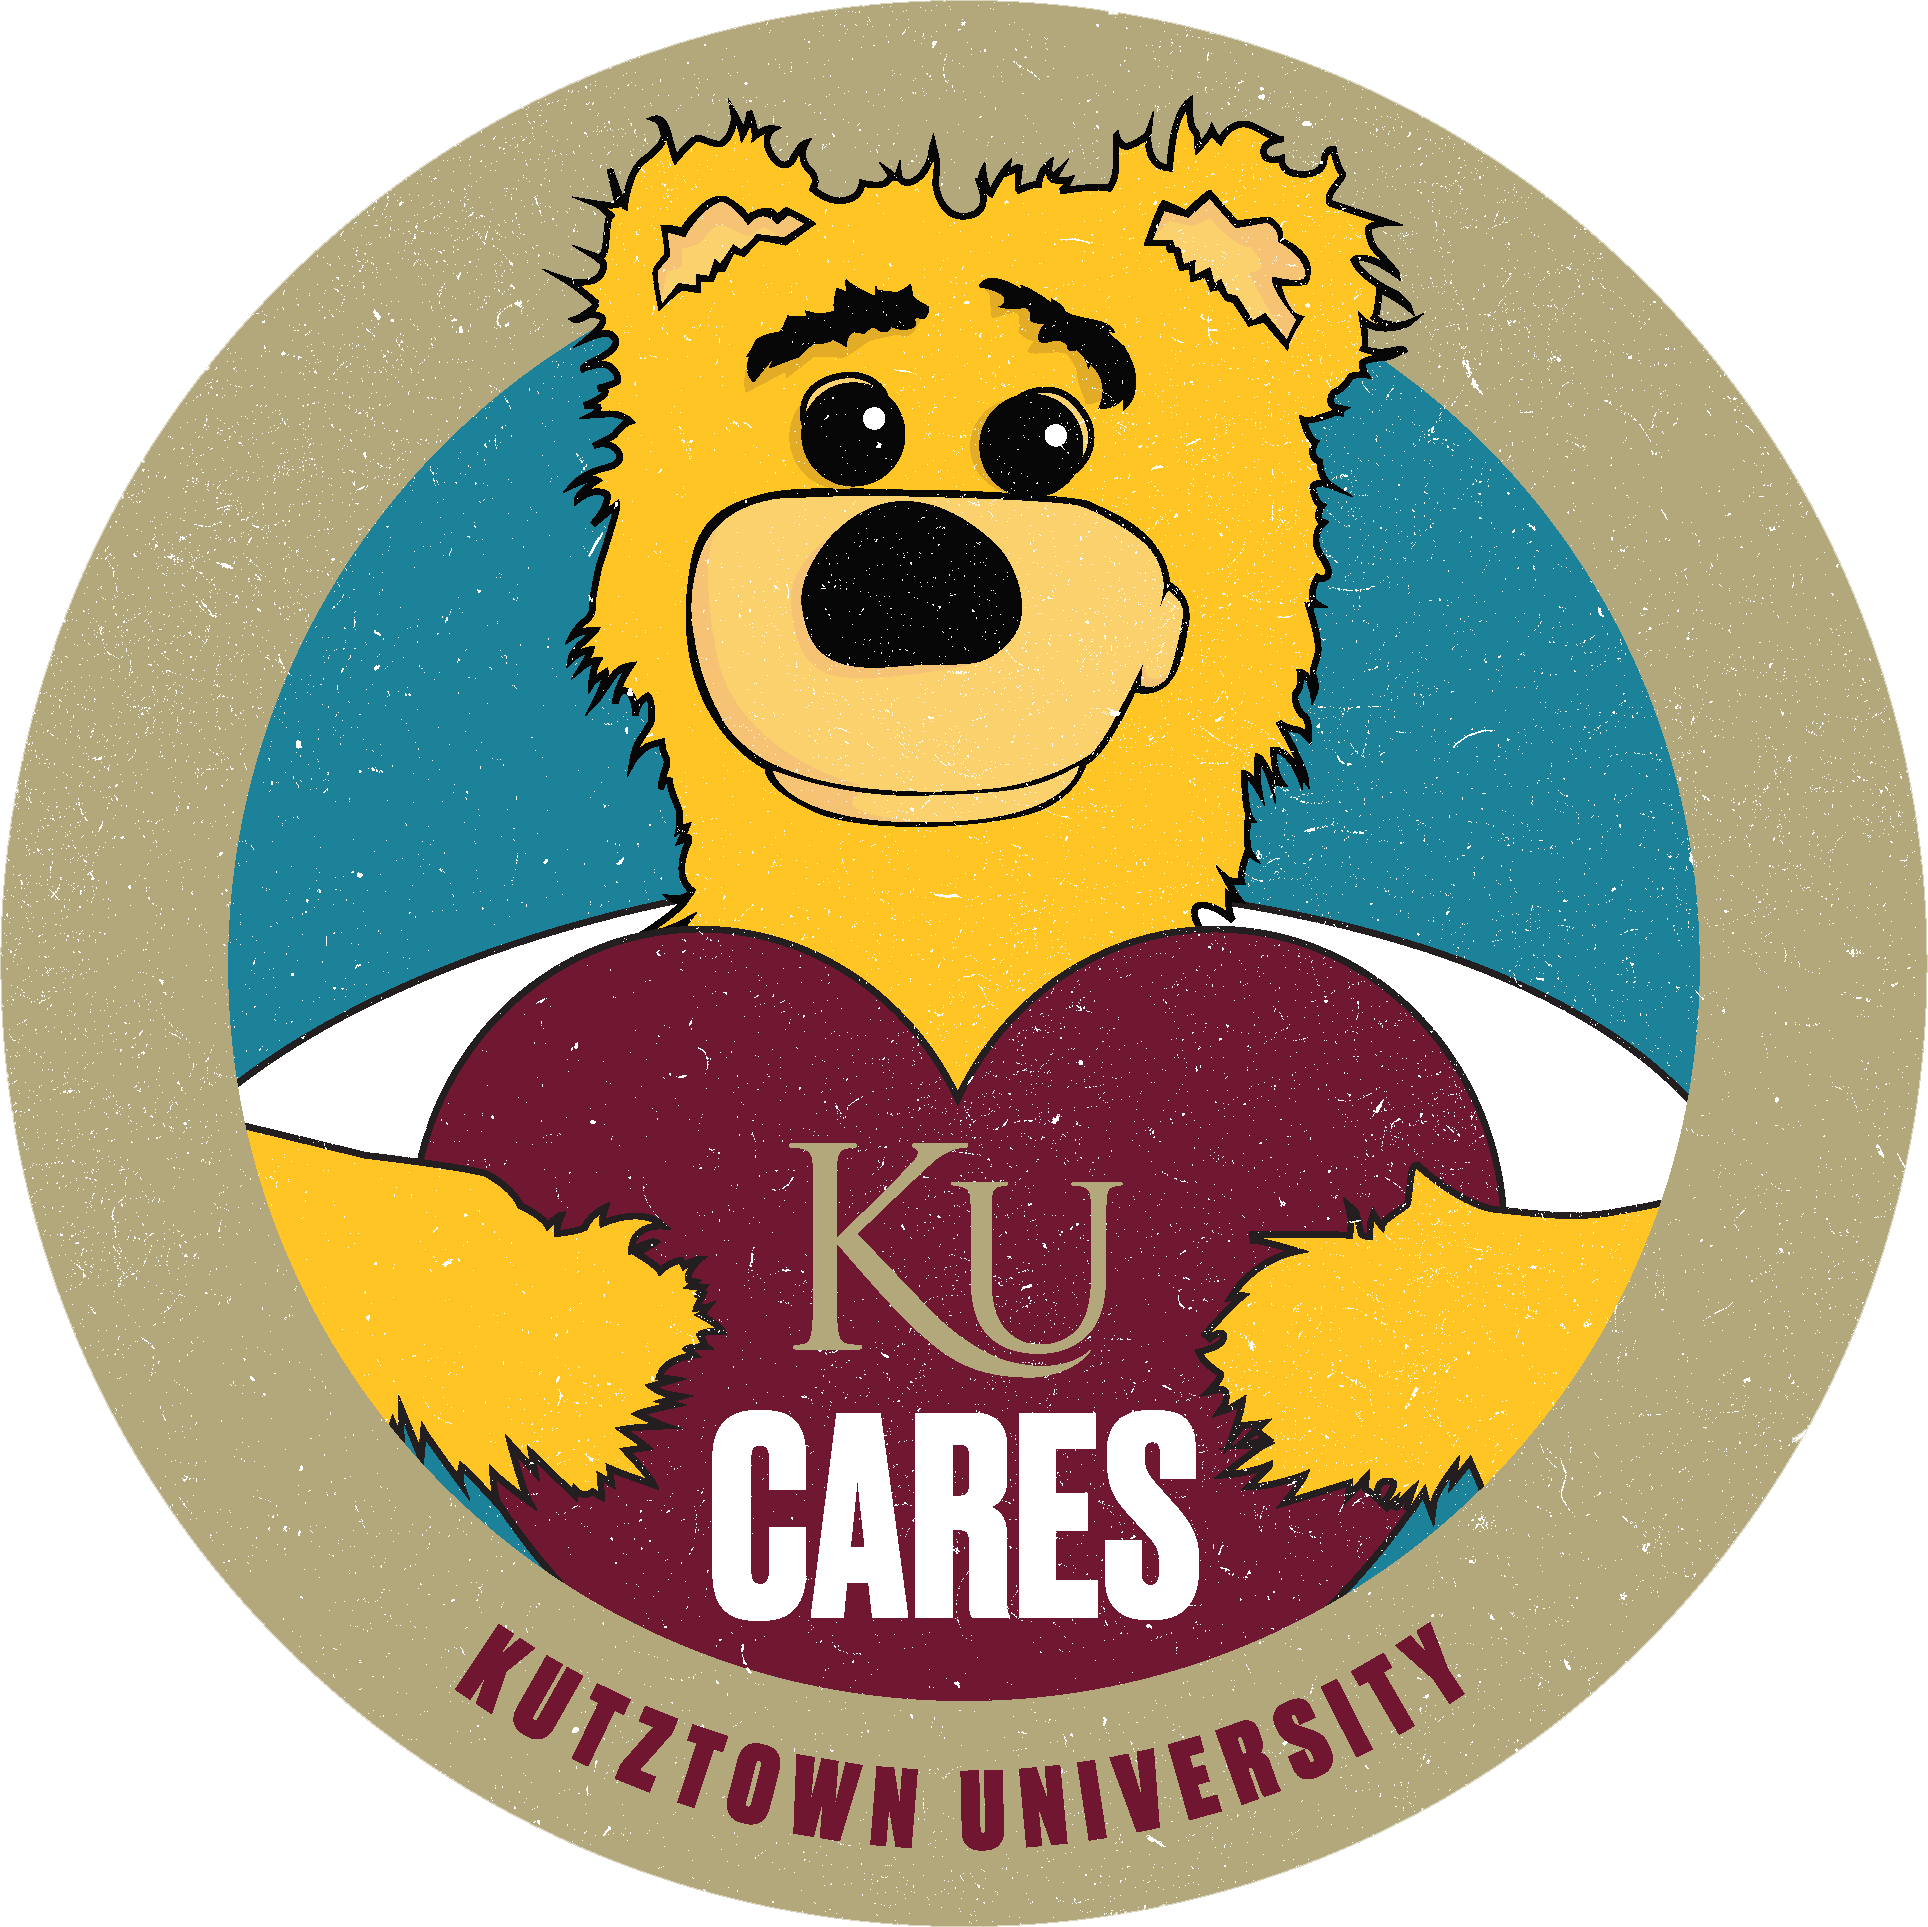 KU CARES WEEK 2020 LOGO